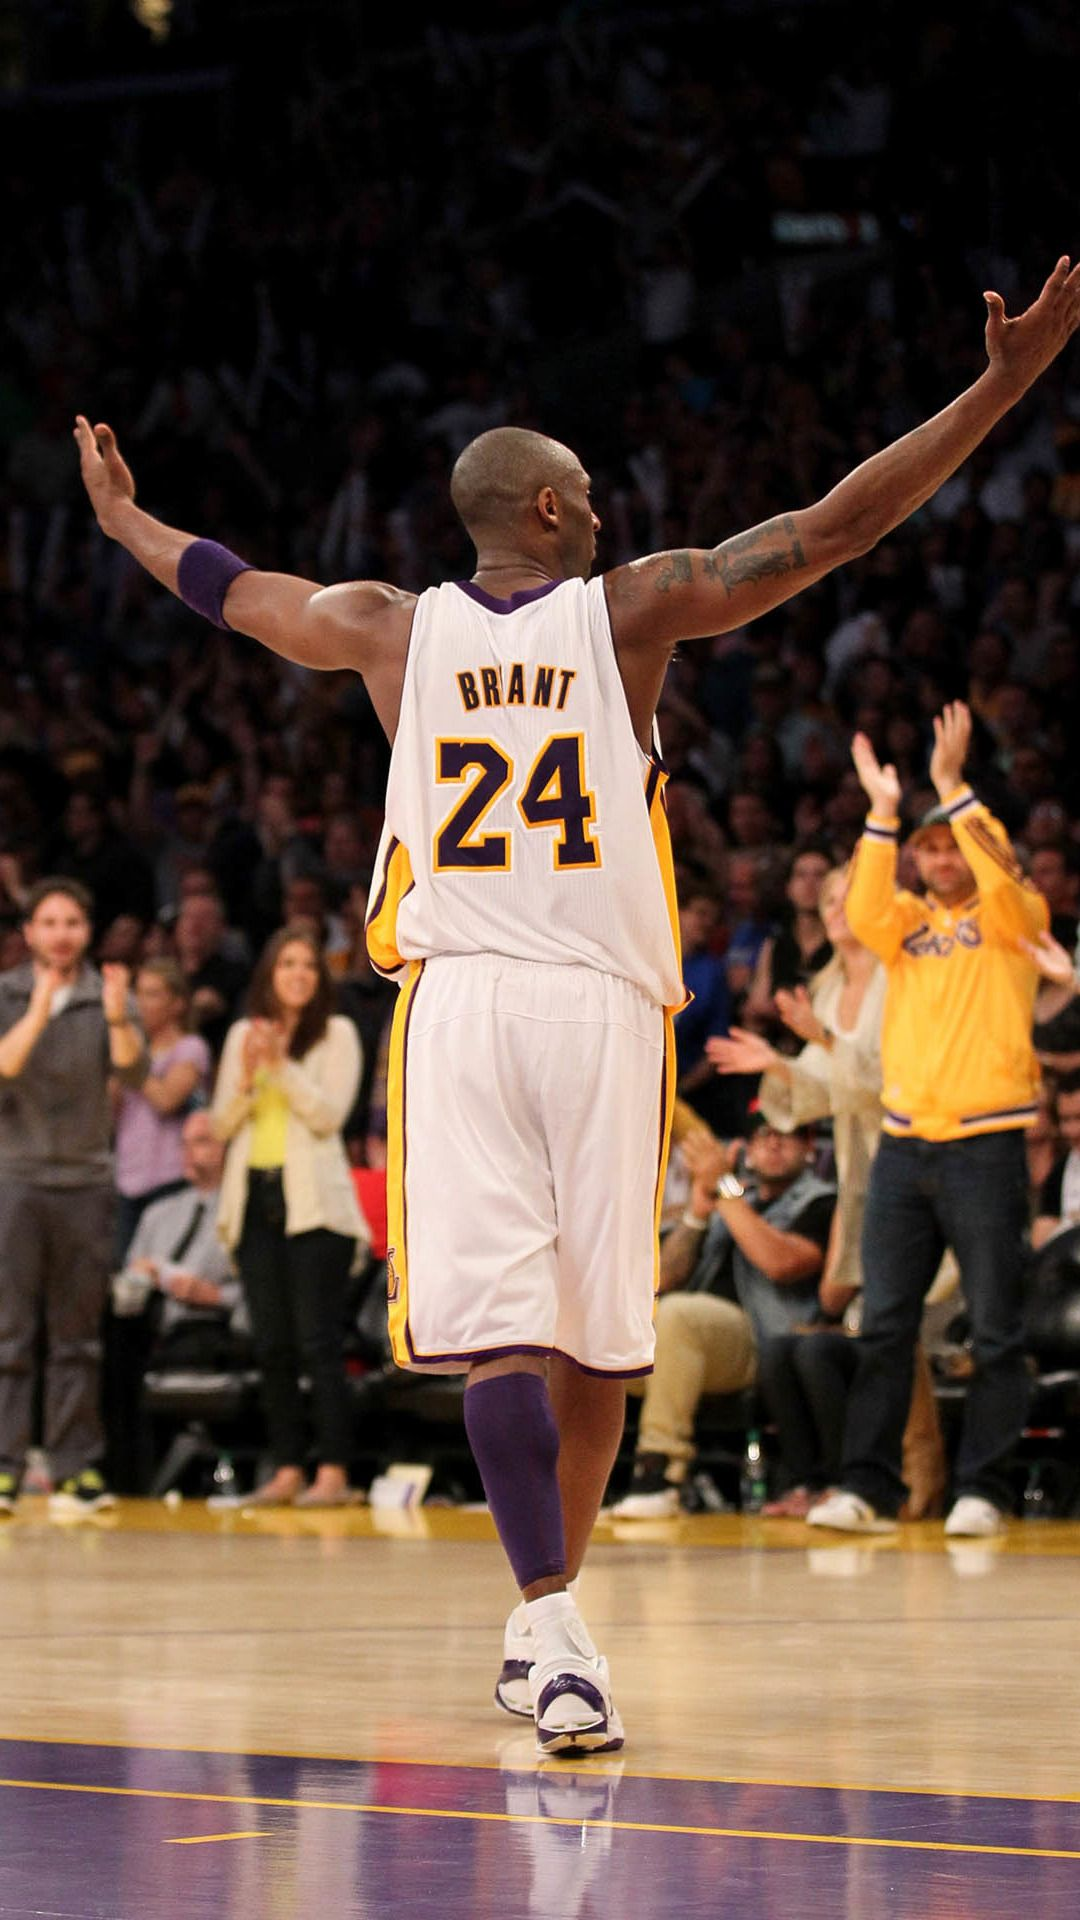 Bryant Kobe Nba Sports Super Star Arena Sucess Cheer Iphone 6 Plus Wallpaper